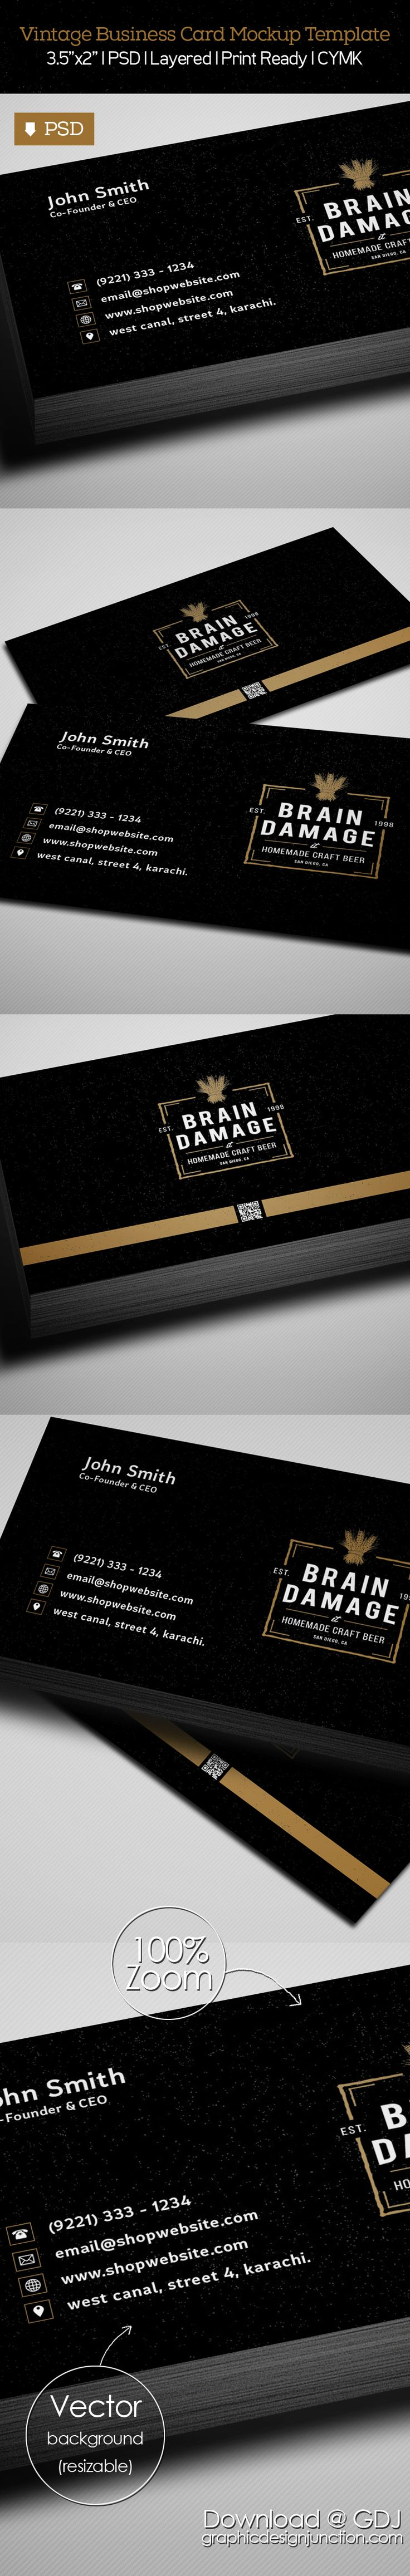 18 best business cards images on pinterest